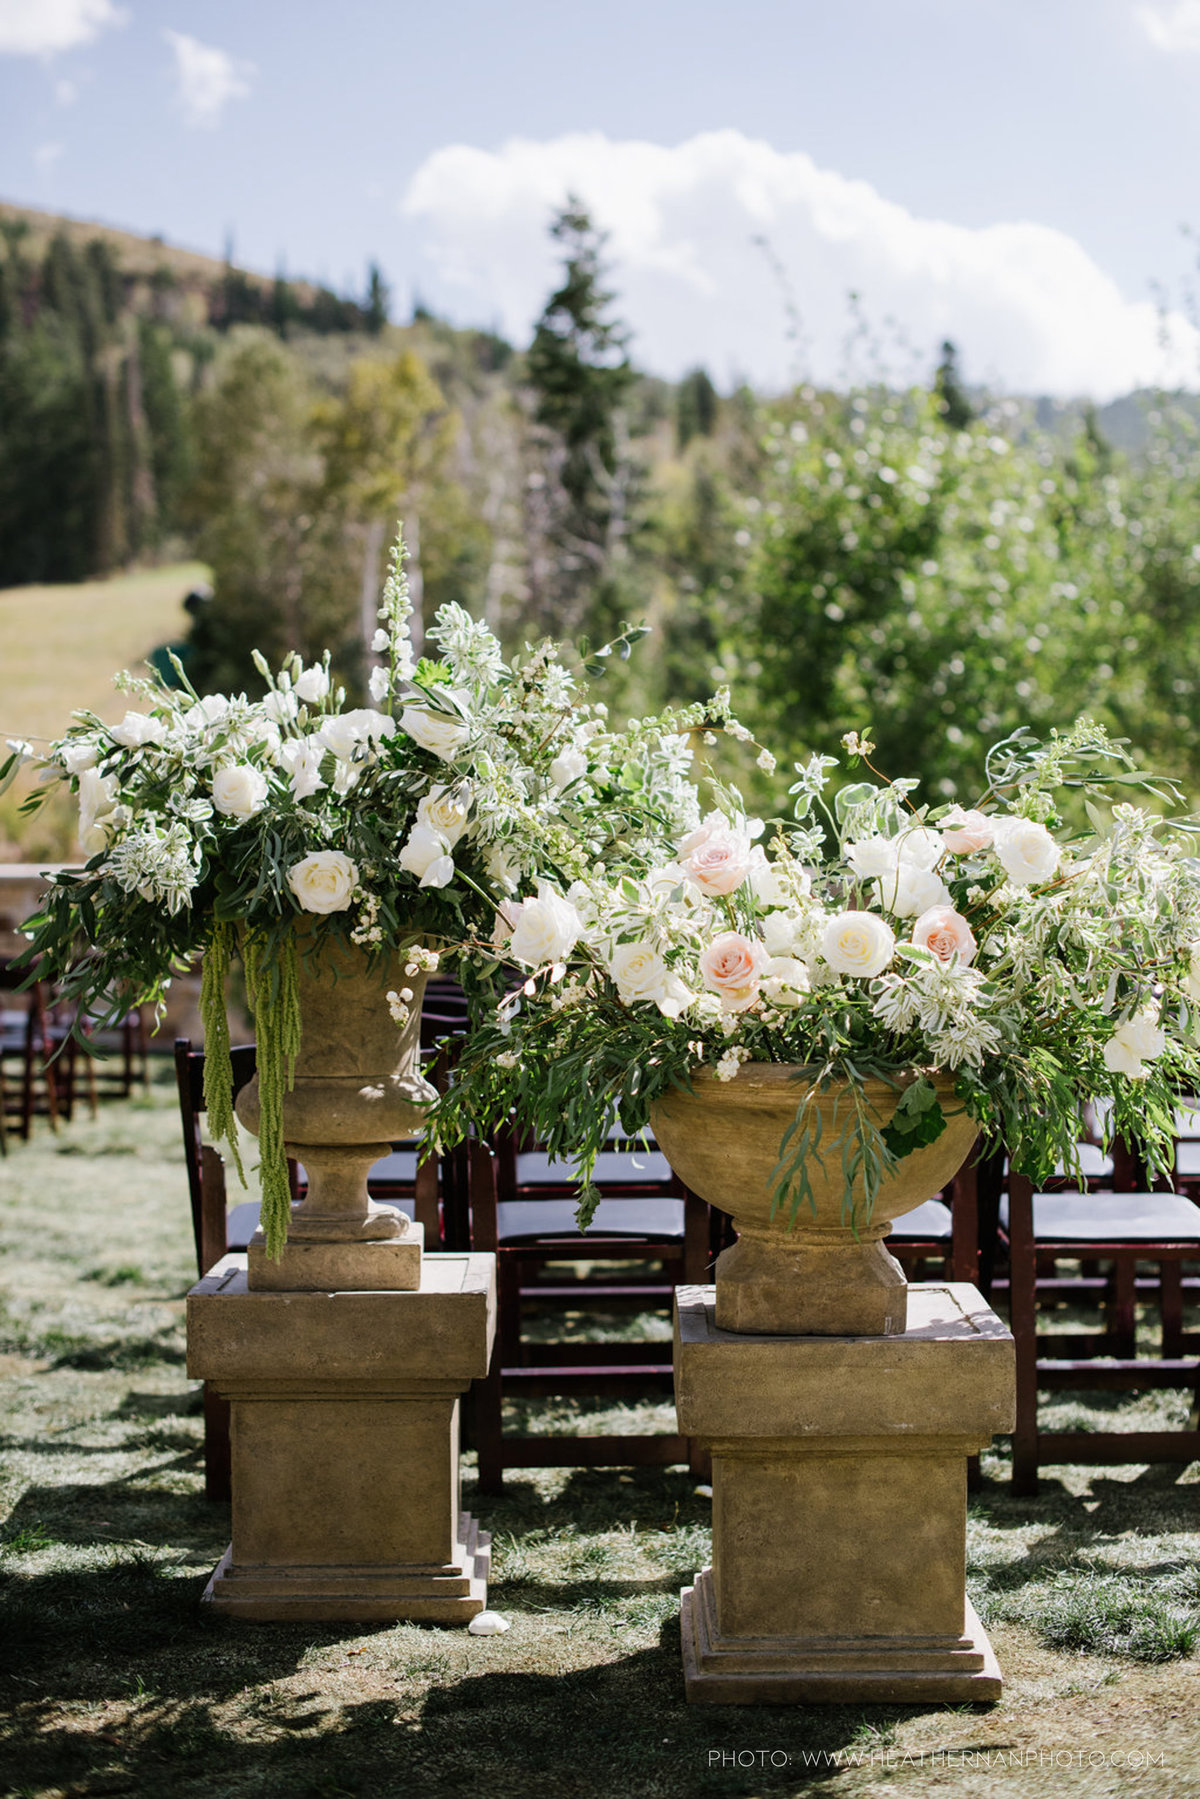 Utah Florist_Summer Weddings in Park City_Romantic Wedding_Luxe Mountain Weddings_Stein Eriksen Lodge Weddings_Artisan Bloom-1409